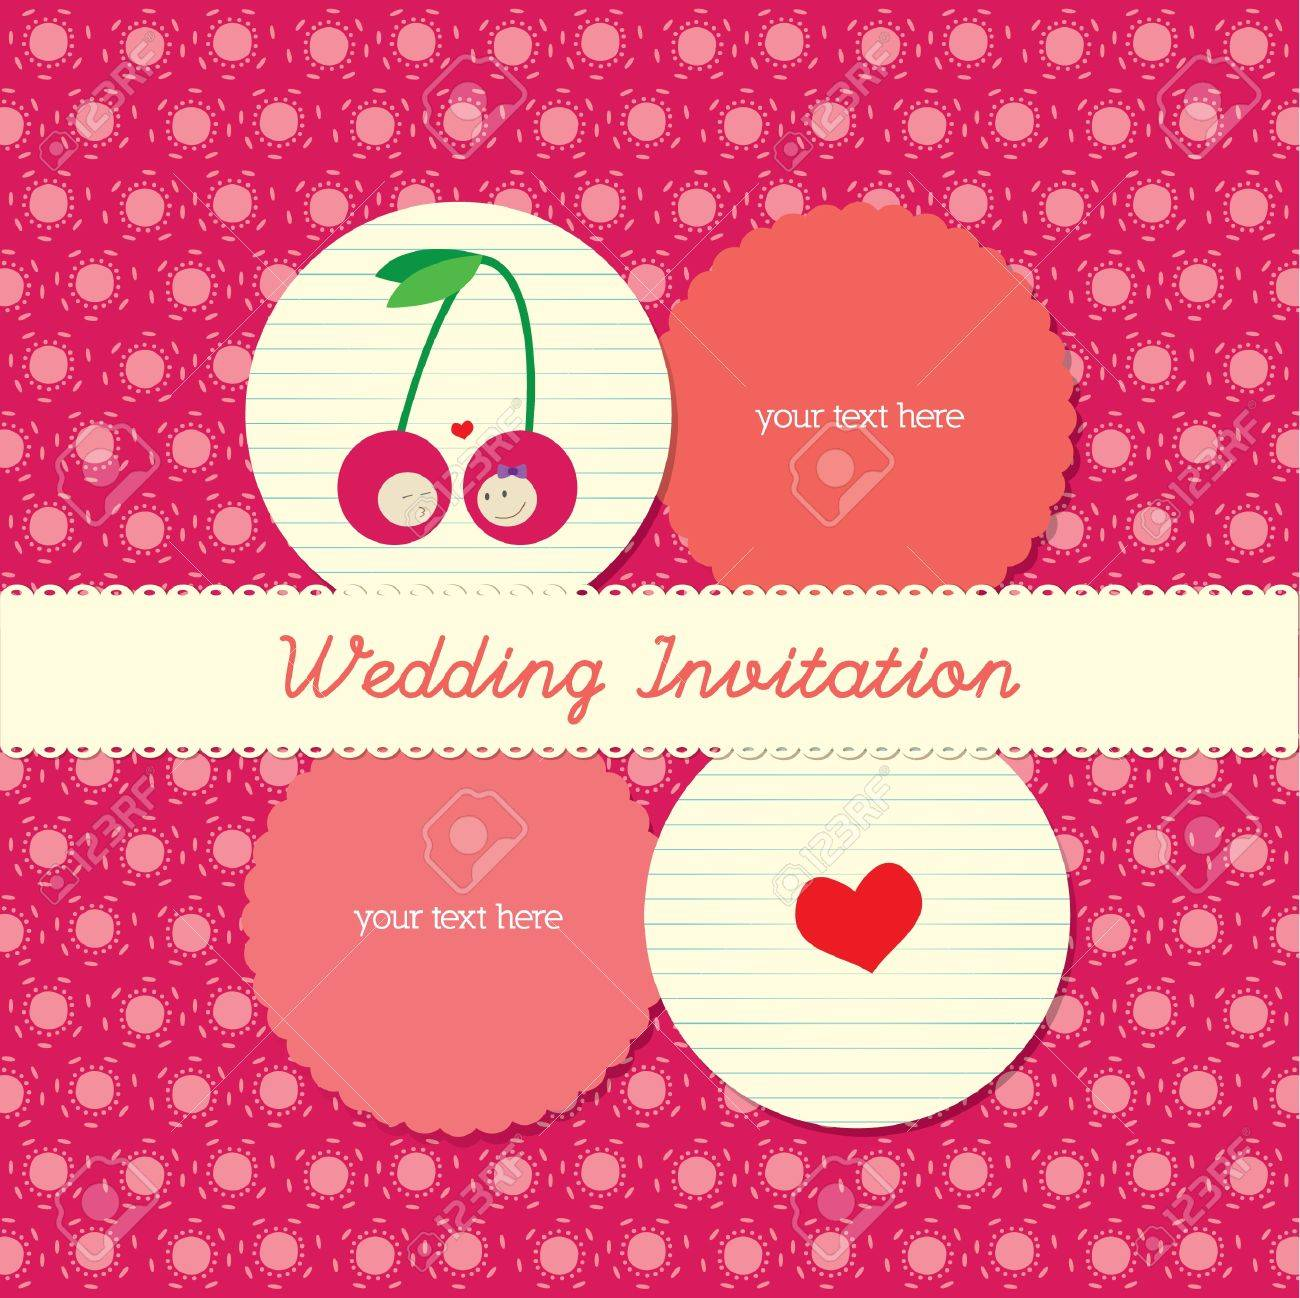 Lovely Wedding Invitation Card With Polka Background Royalty Free ...